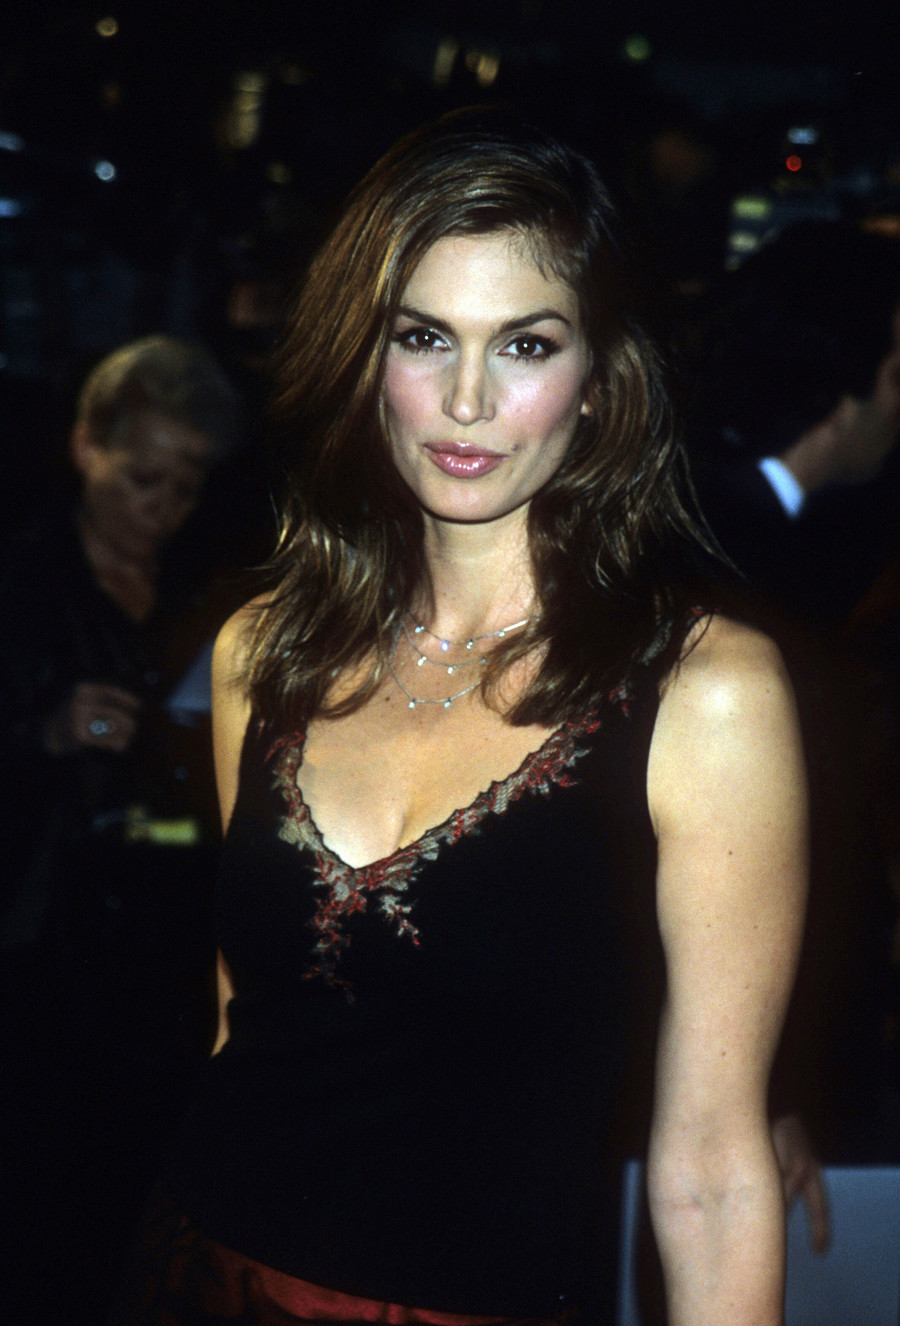 Cindy Crawford w latach 90. / Getty Images / Steve Eichner